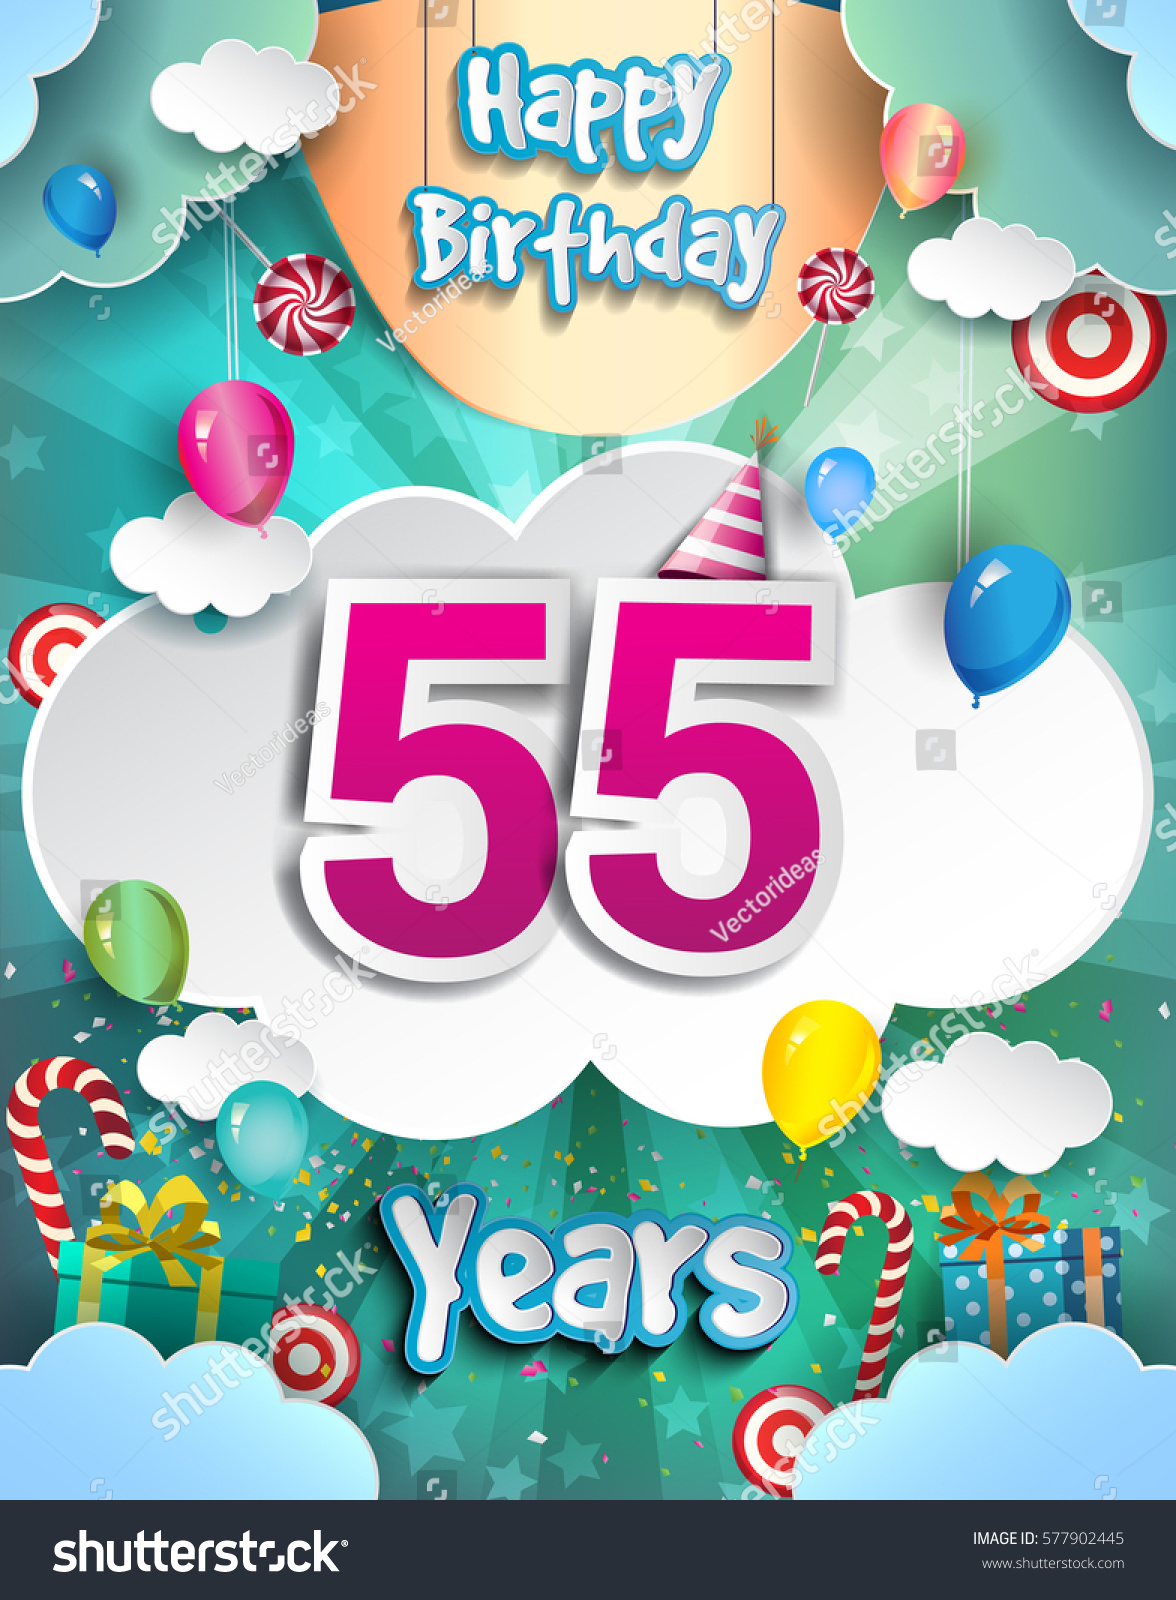 55 Years Birthday Design For Greeting Cards And Poster With Clouds Gift Box Balloons Template Anniversary Celebration